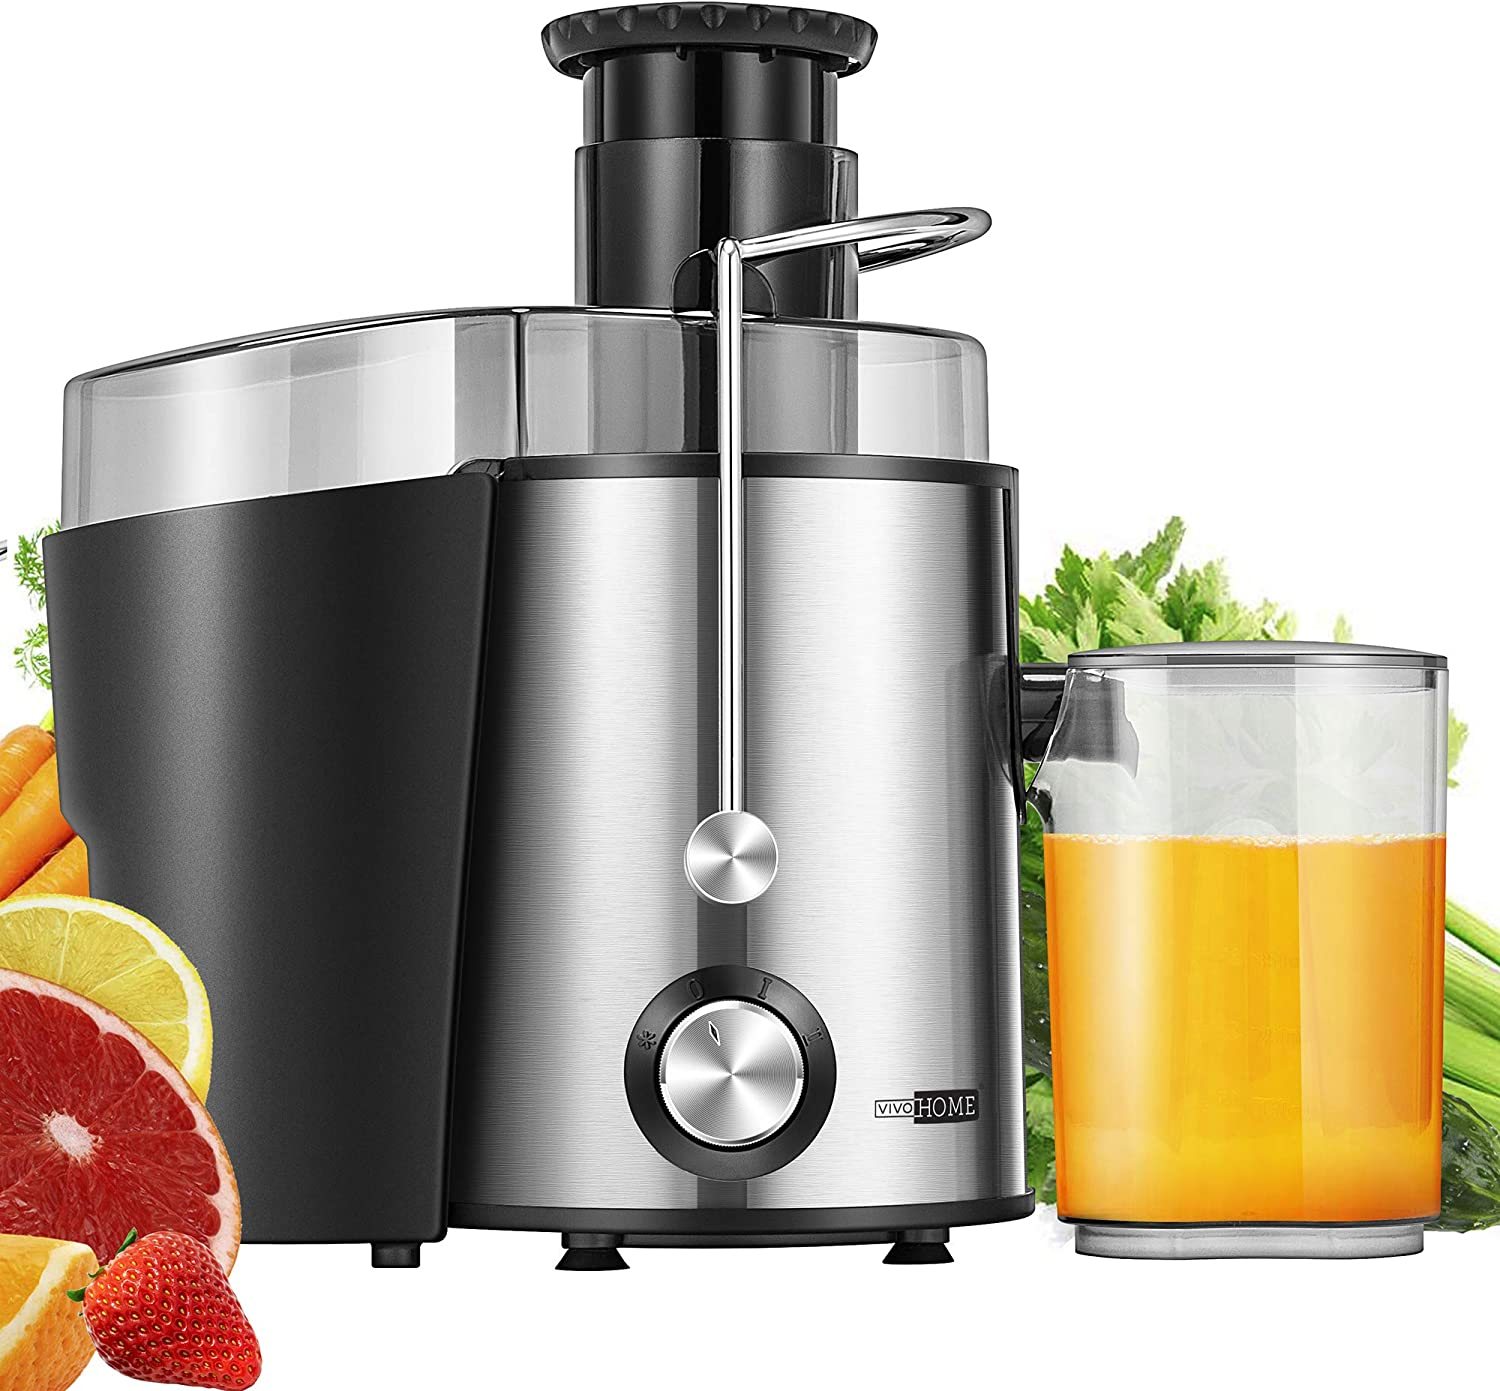 VIVOHOME 400W Centrifugal Juicer Machine, 2-speed Juice Extractor with Safety Lock Arm, Overloading Protection